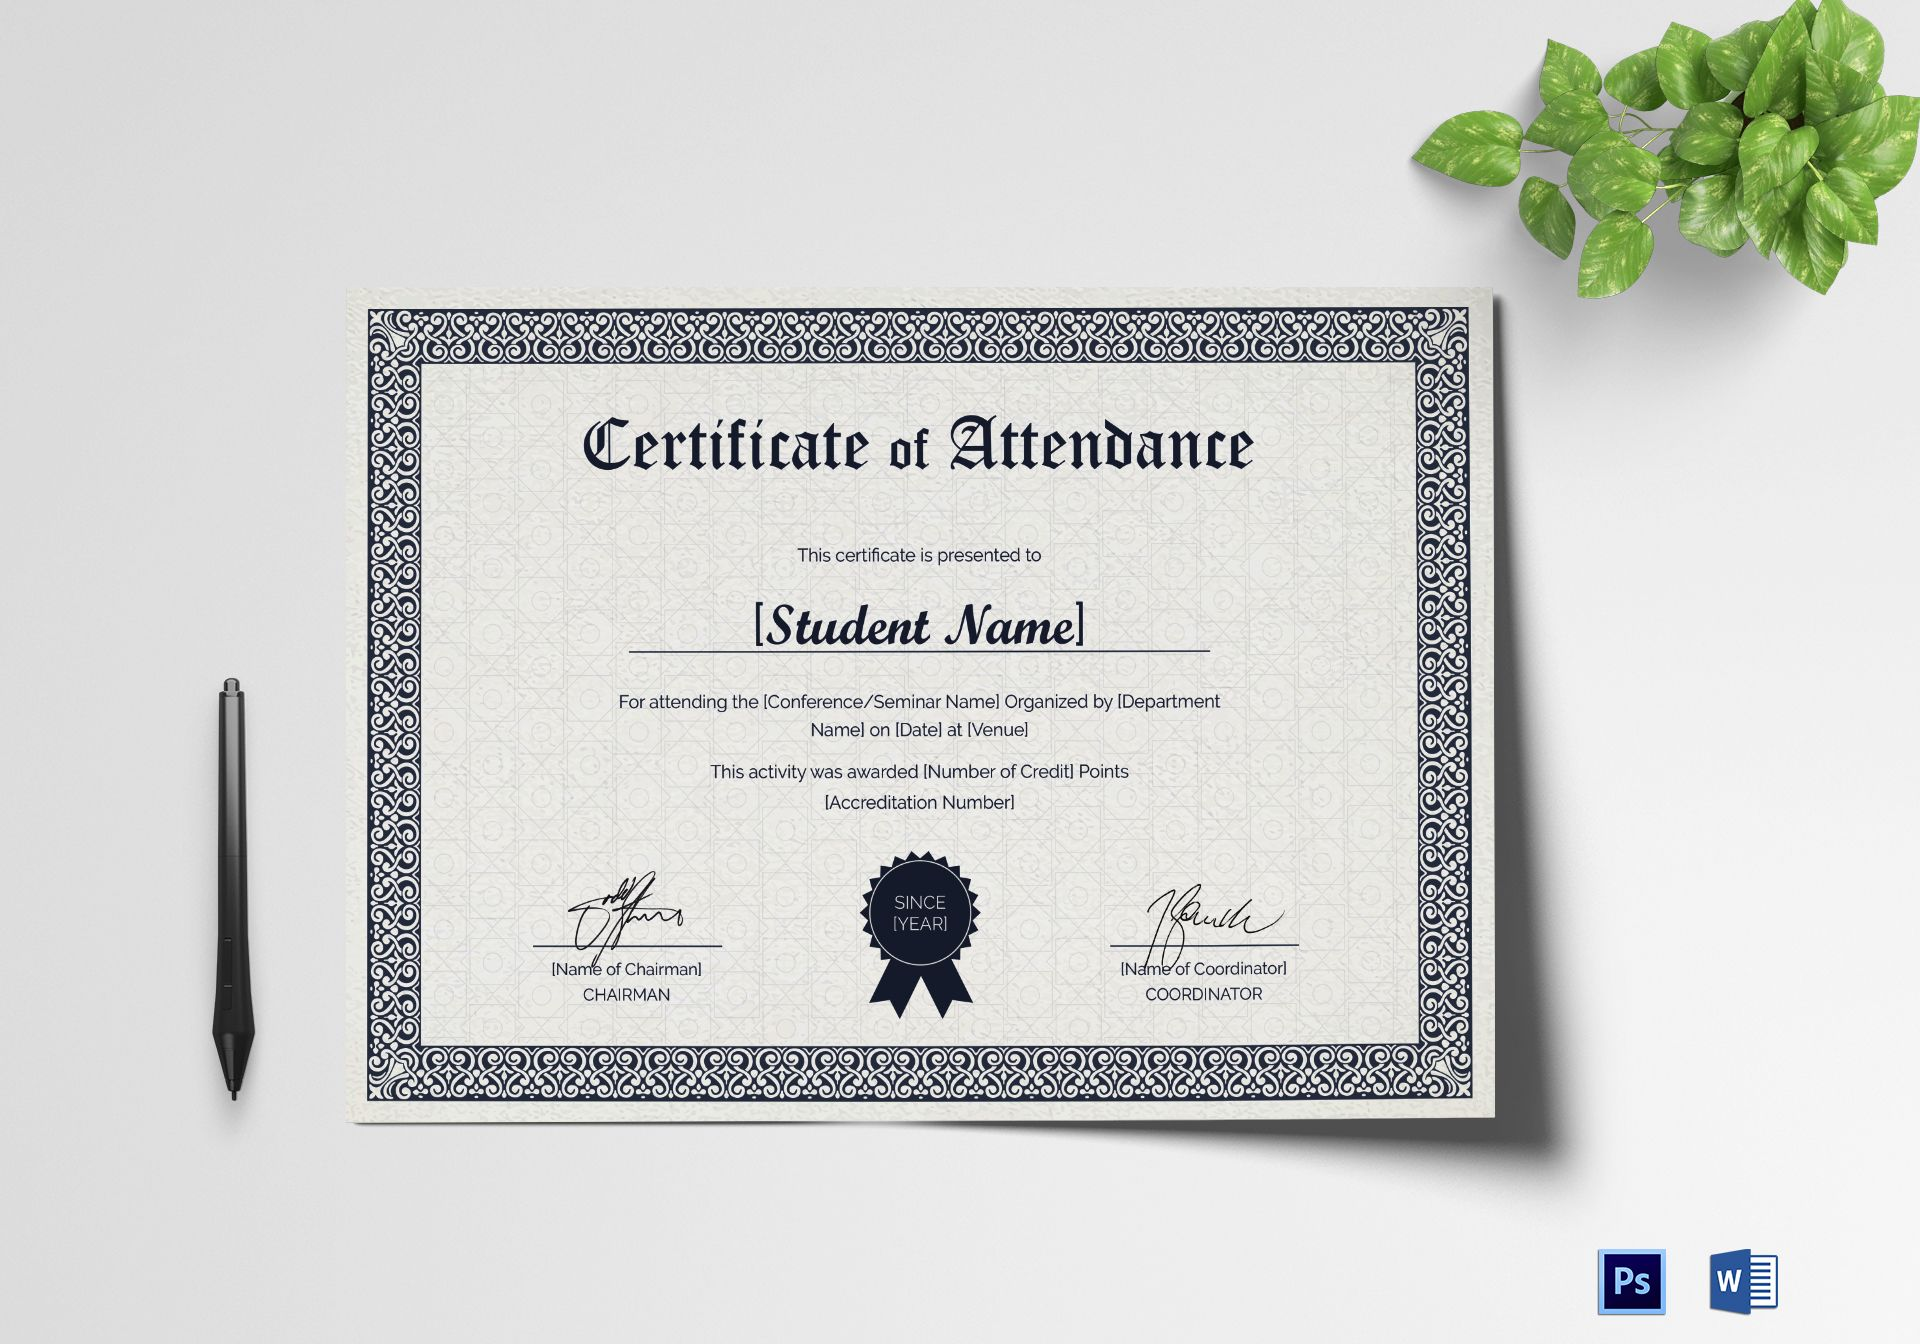 Students Attendance Certificate Design Template In Psd Word